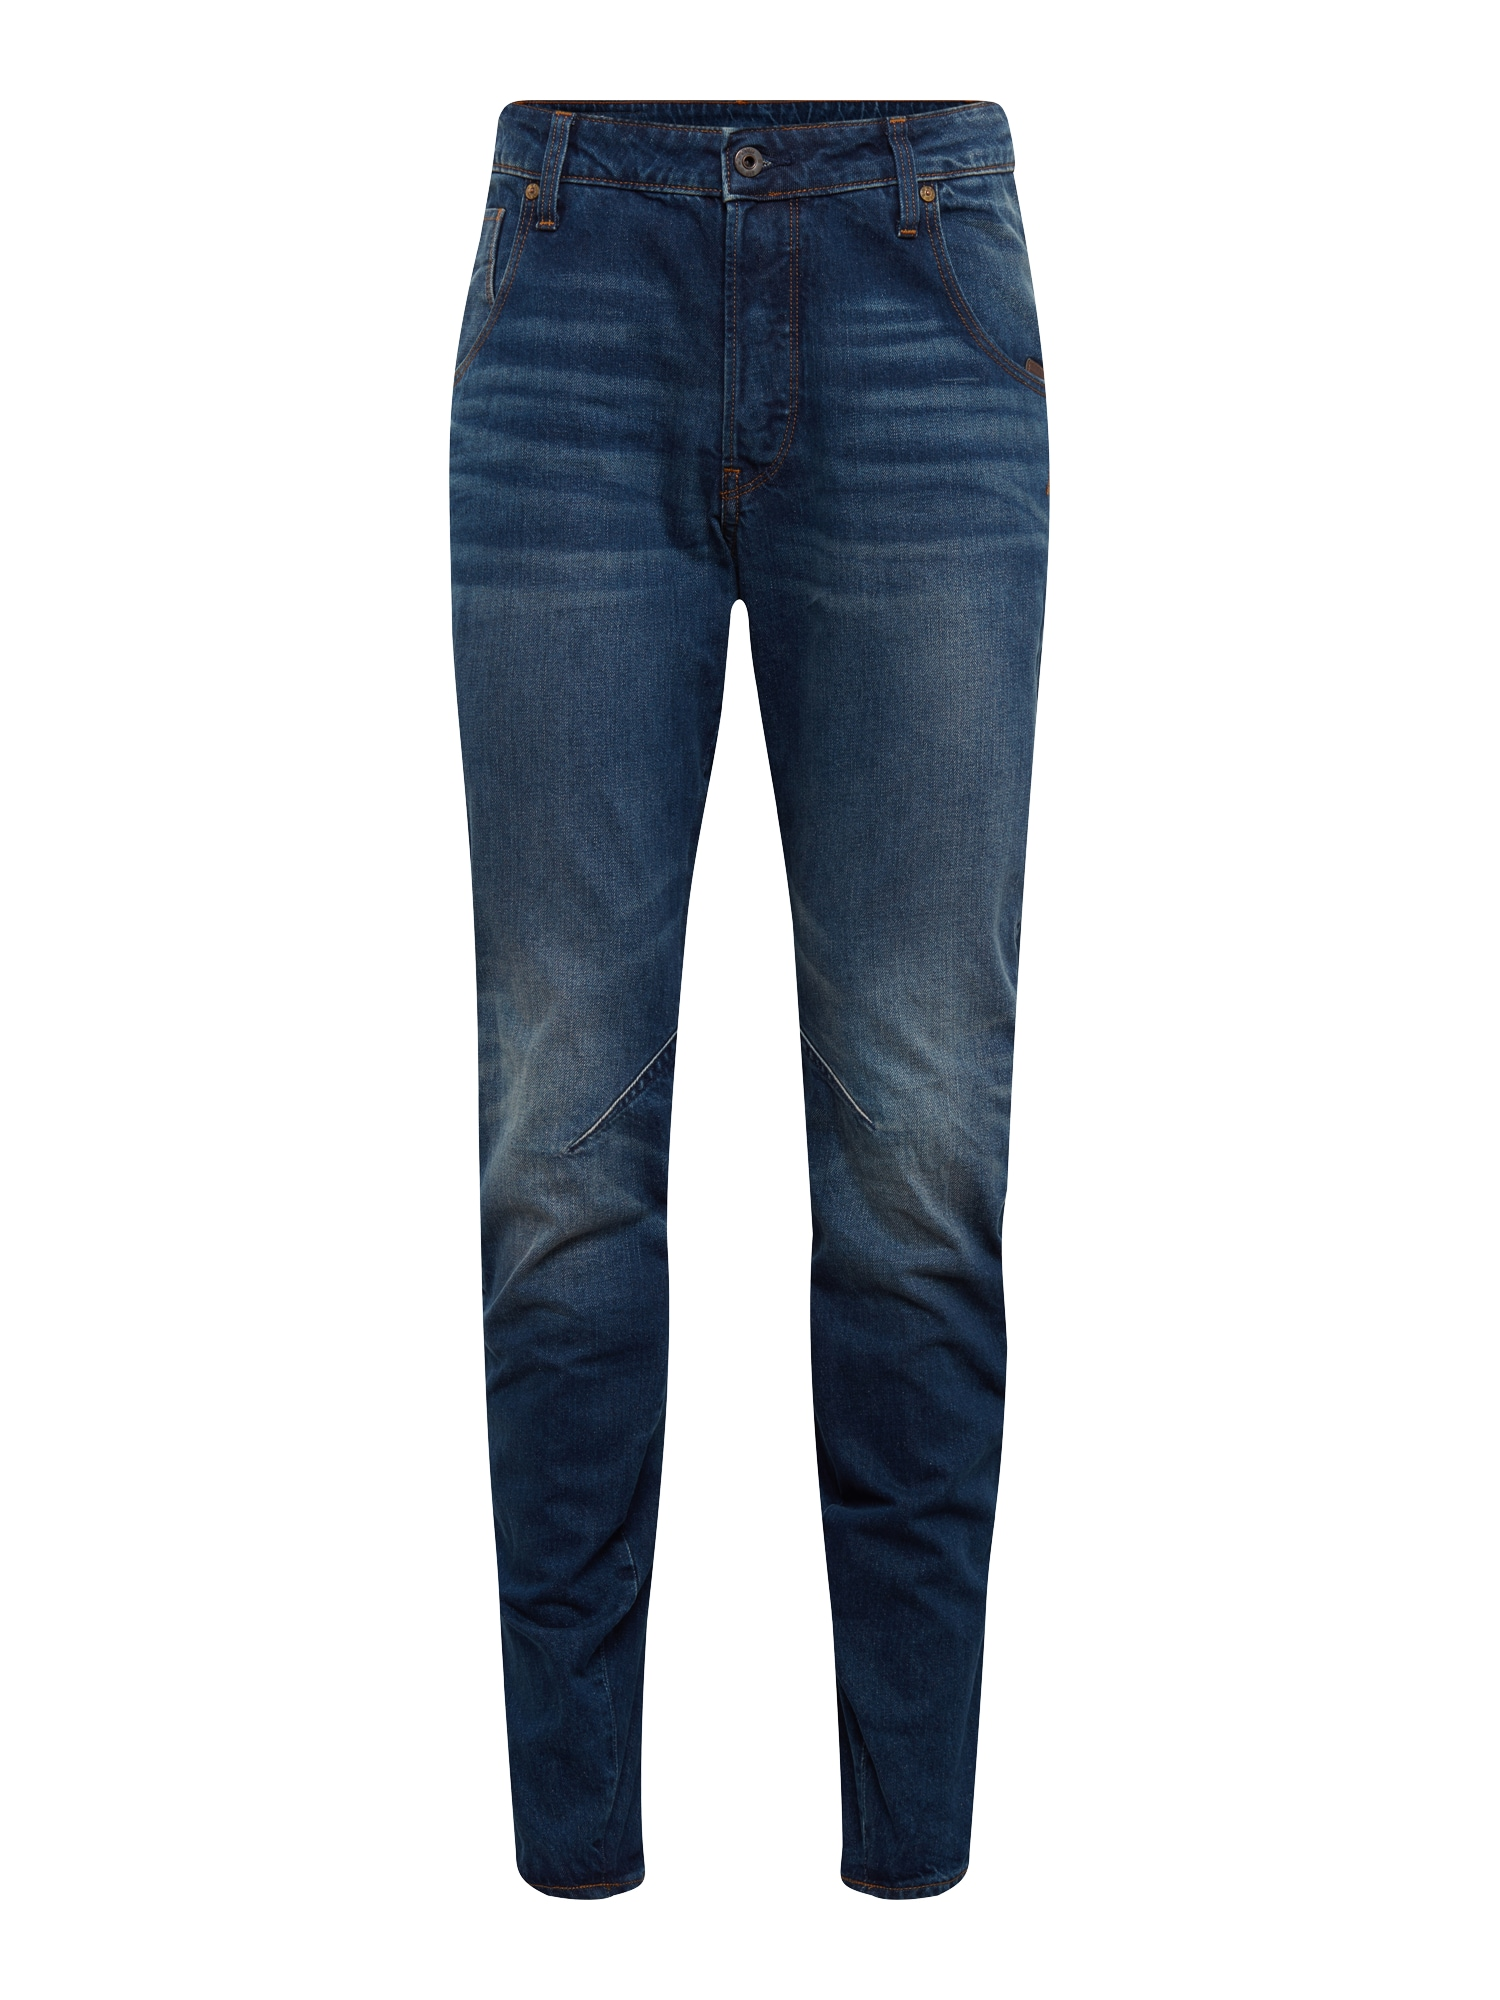 Jeans ´Arc 3D Tapered´